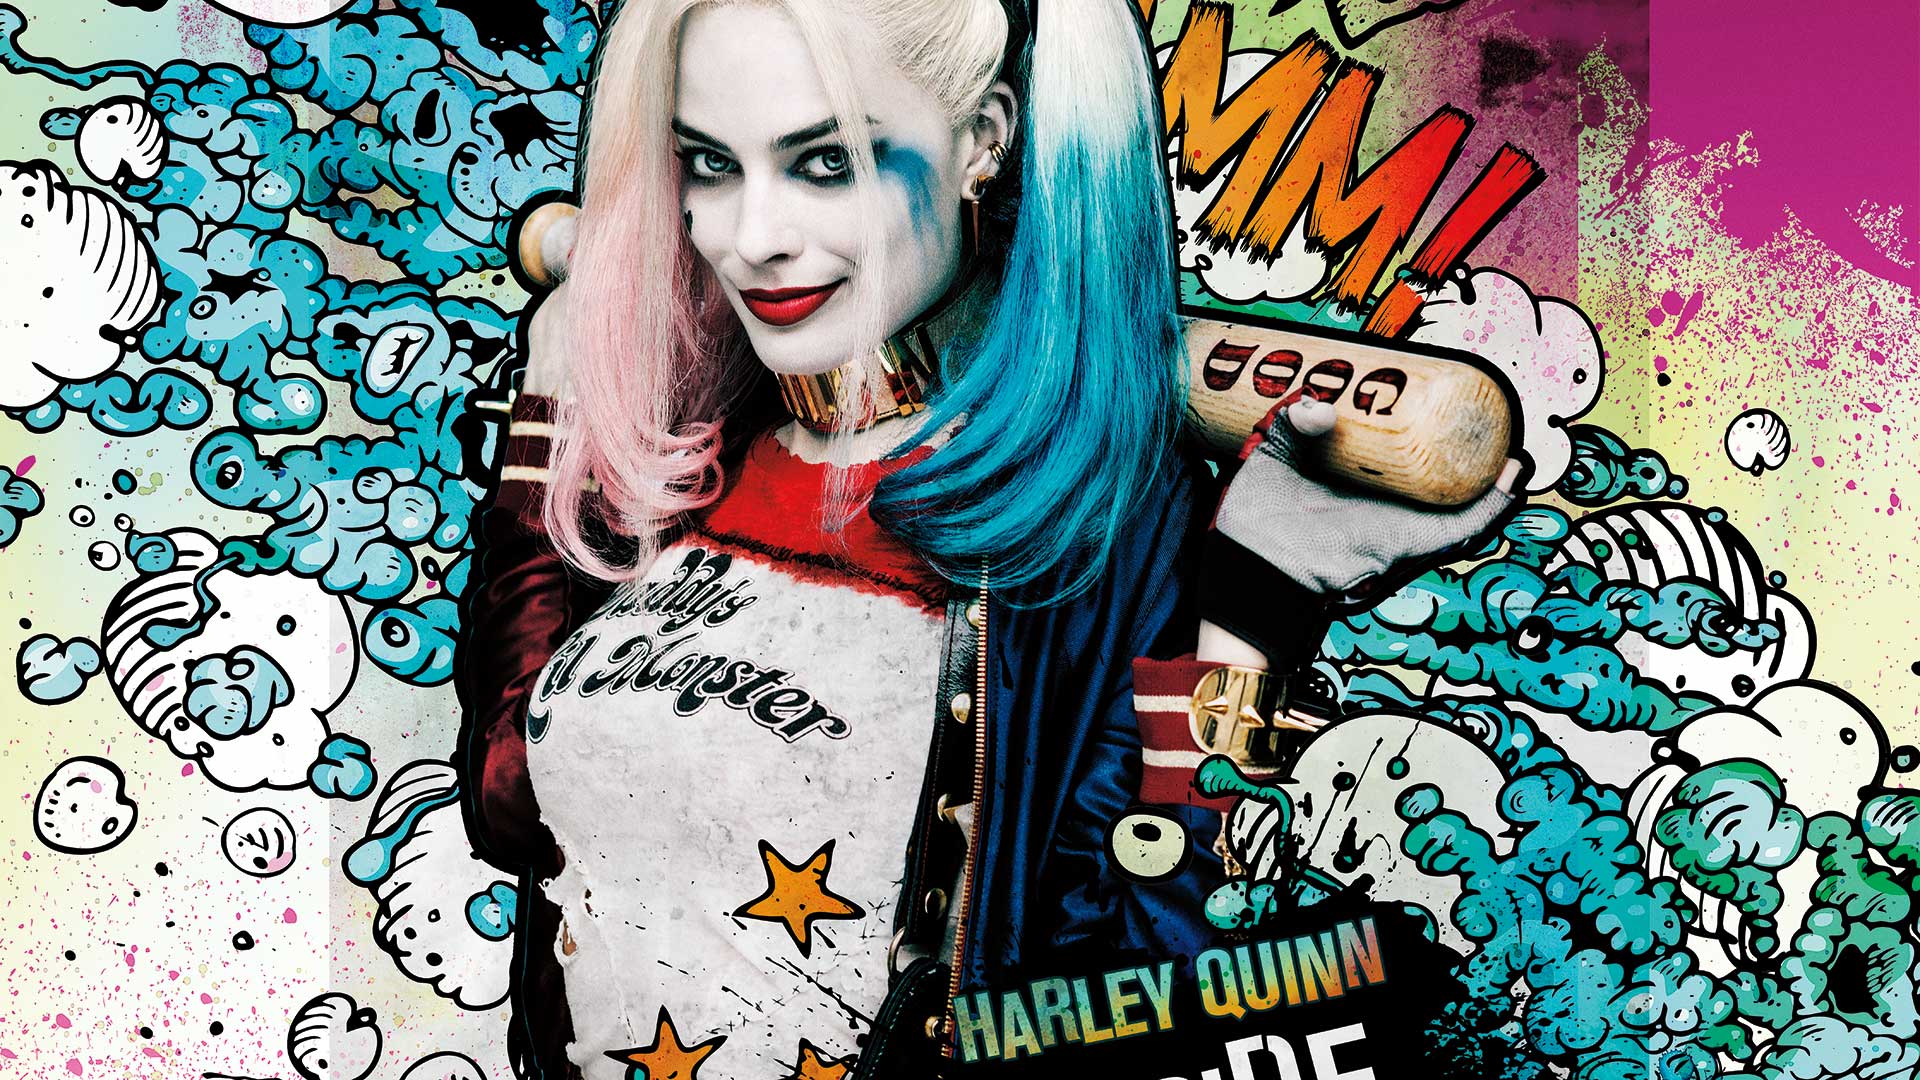 gallery_327632k4a_ss_dom_character_harley_57a3c96be06cb4-90062679